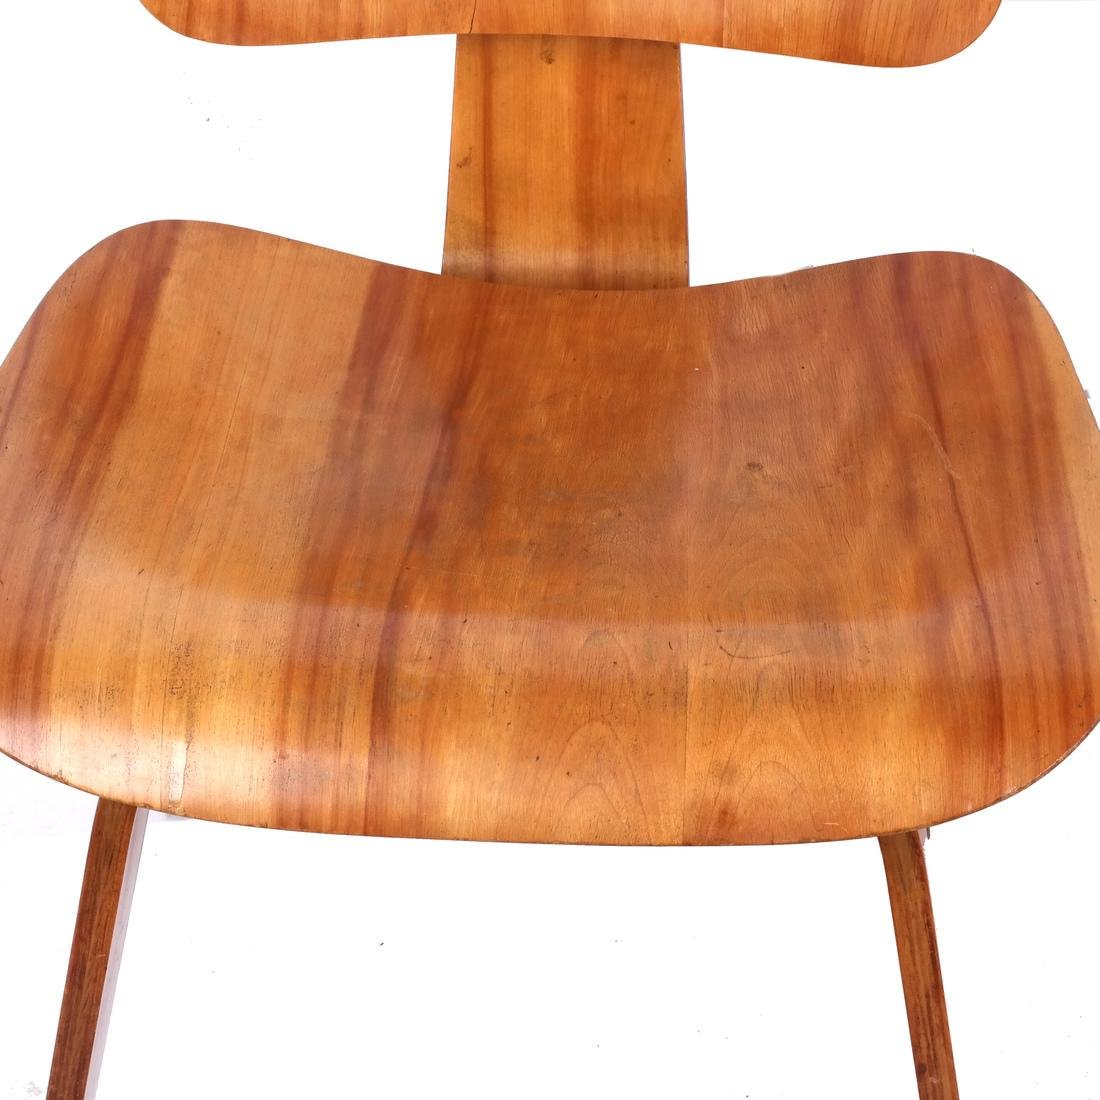 Charles Eames for Herman Miller DCW Chairs - 3